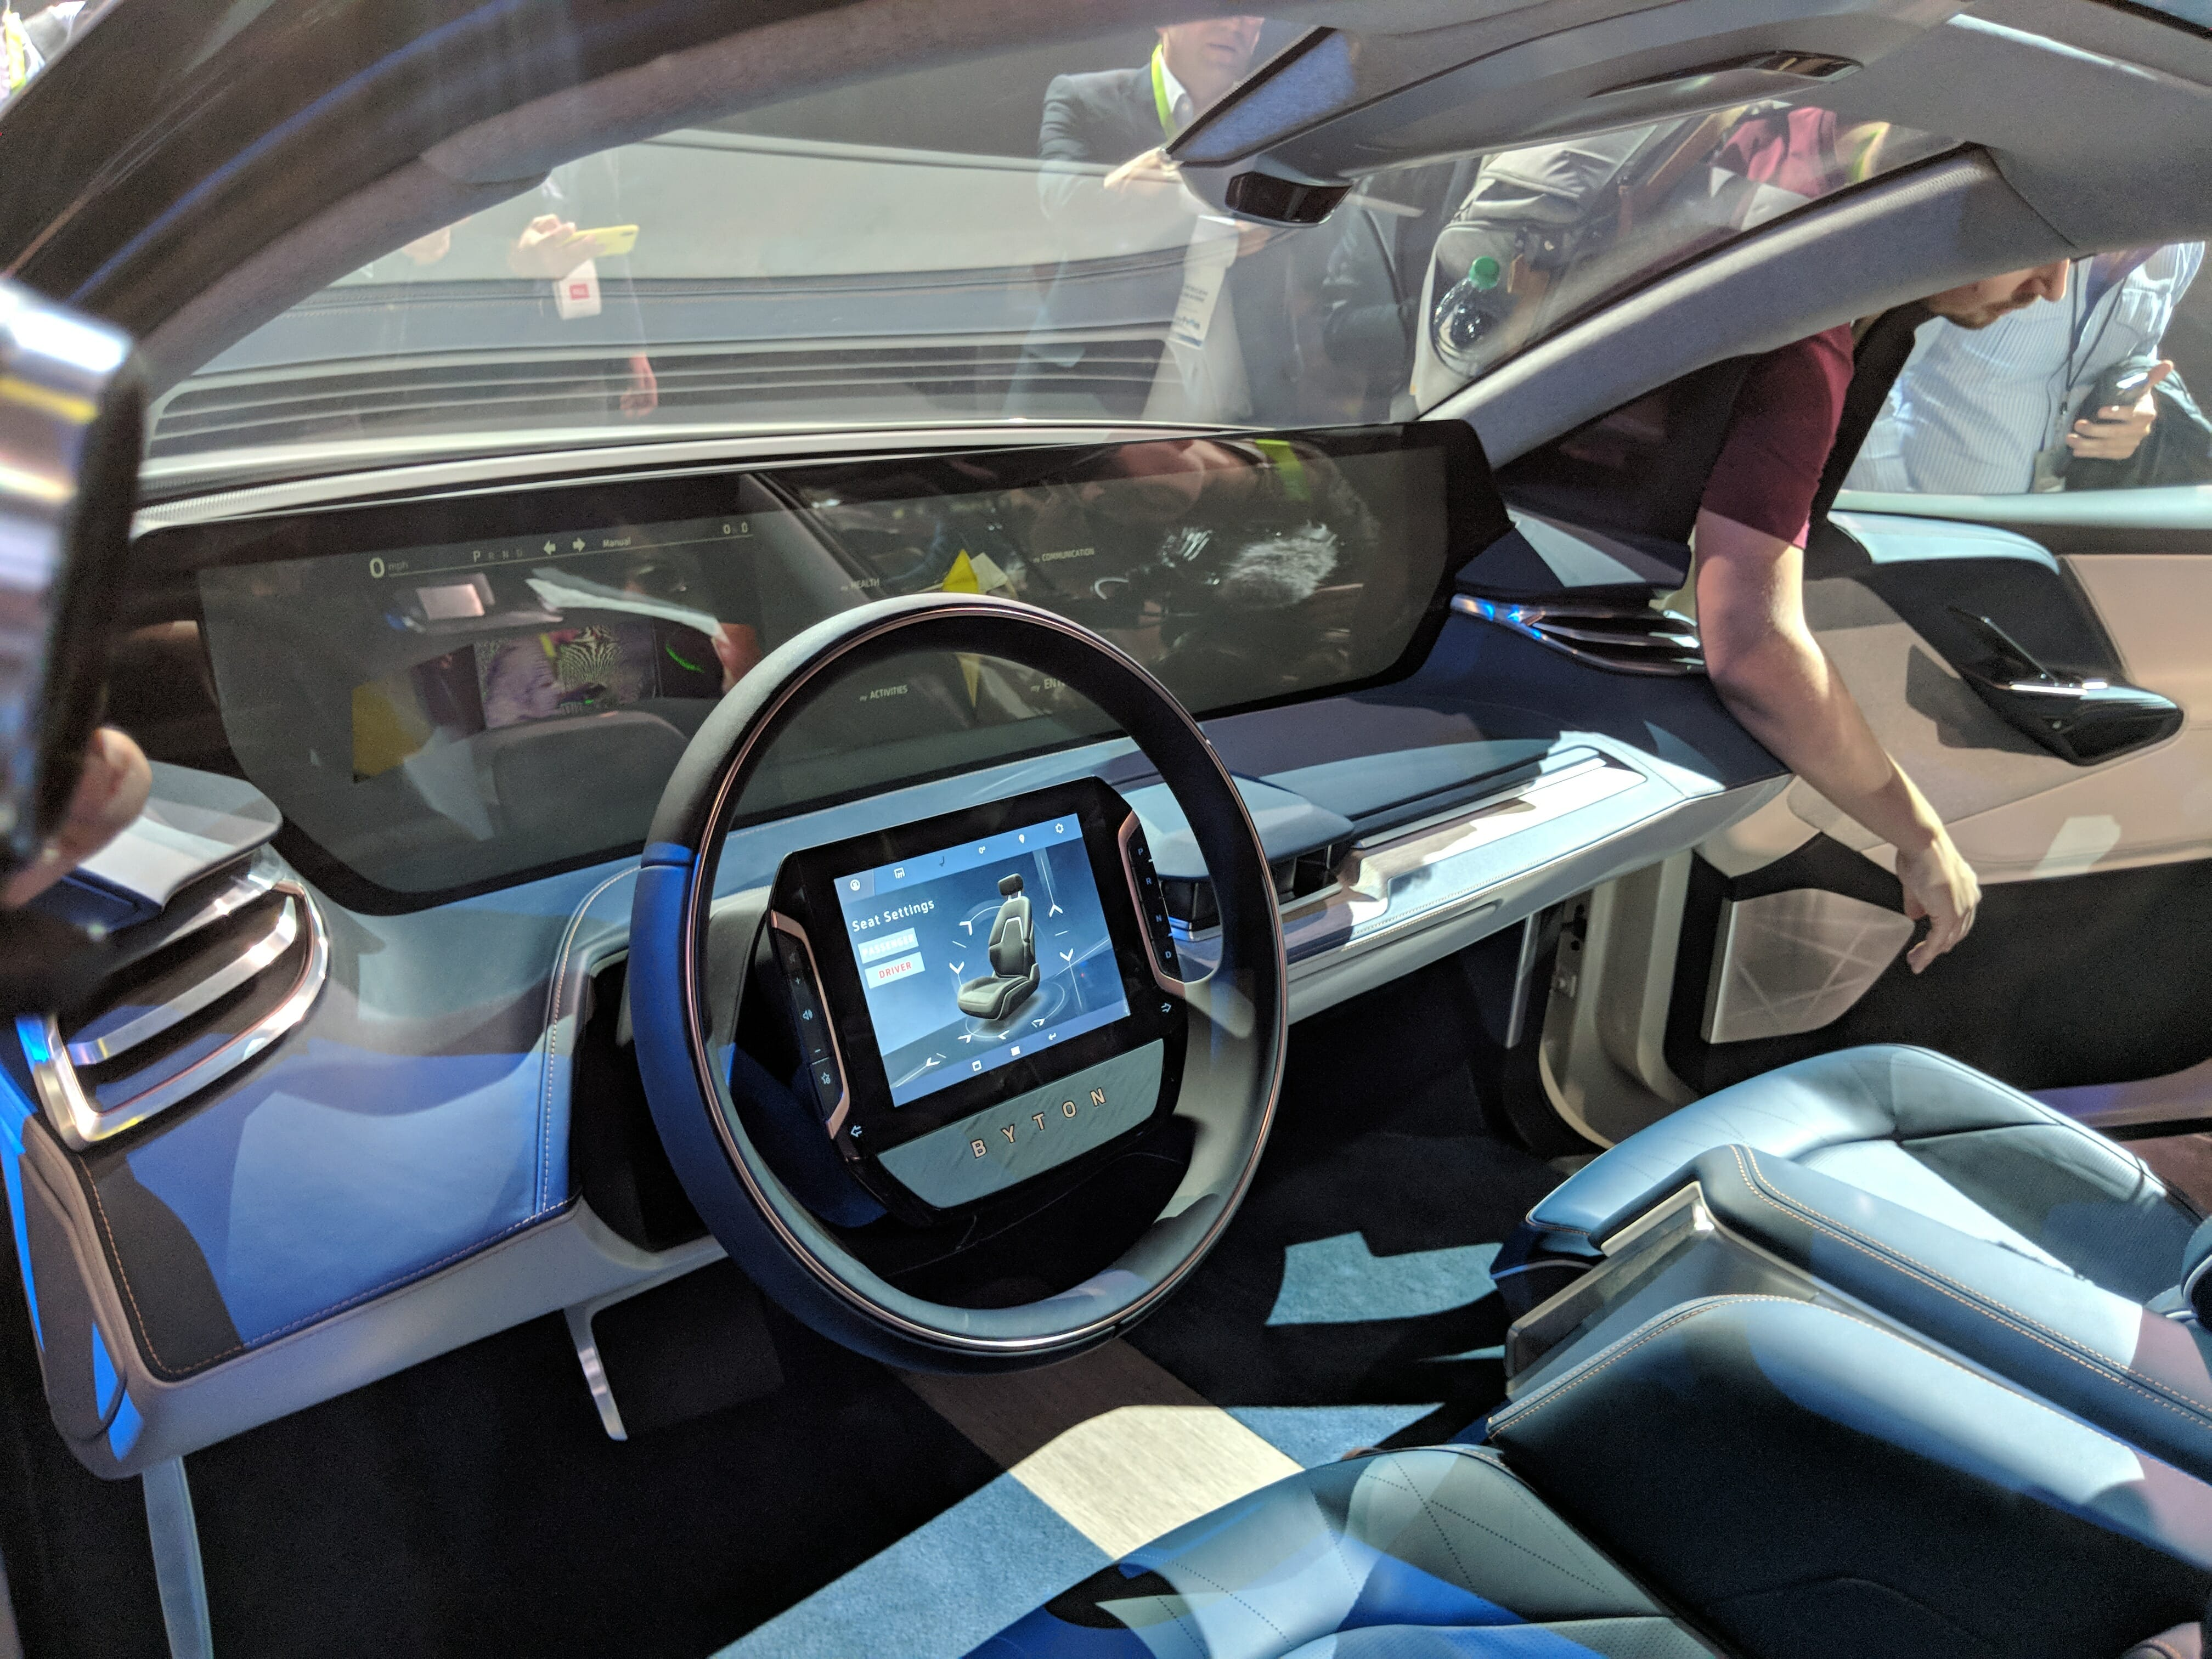 byton interior electric car self-driving display